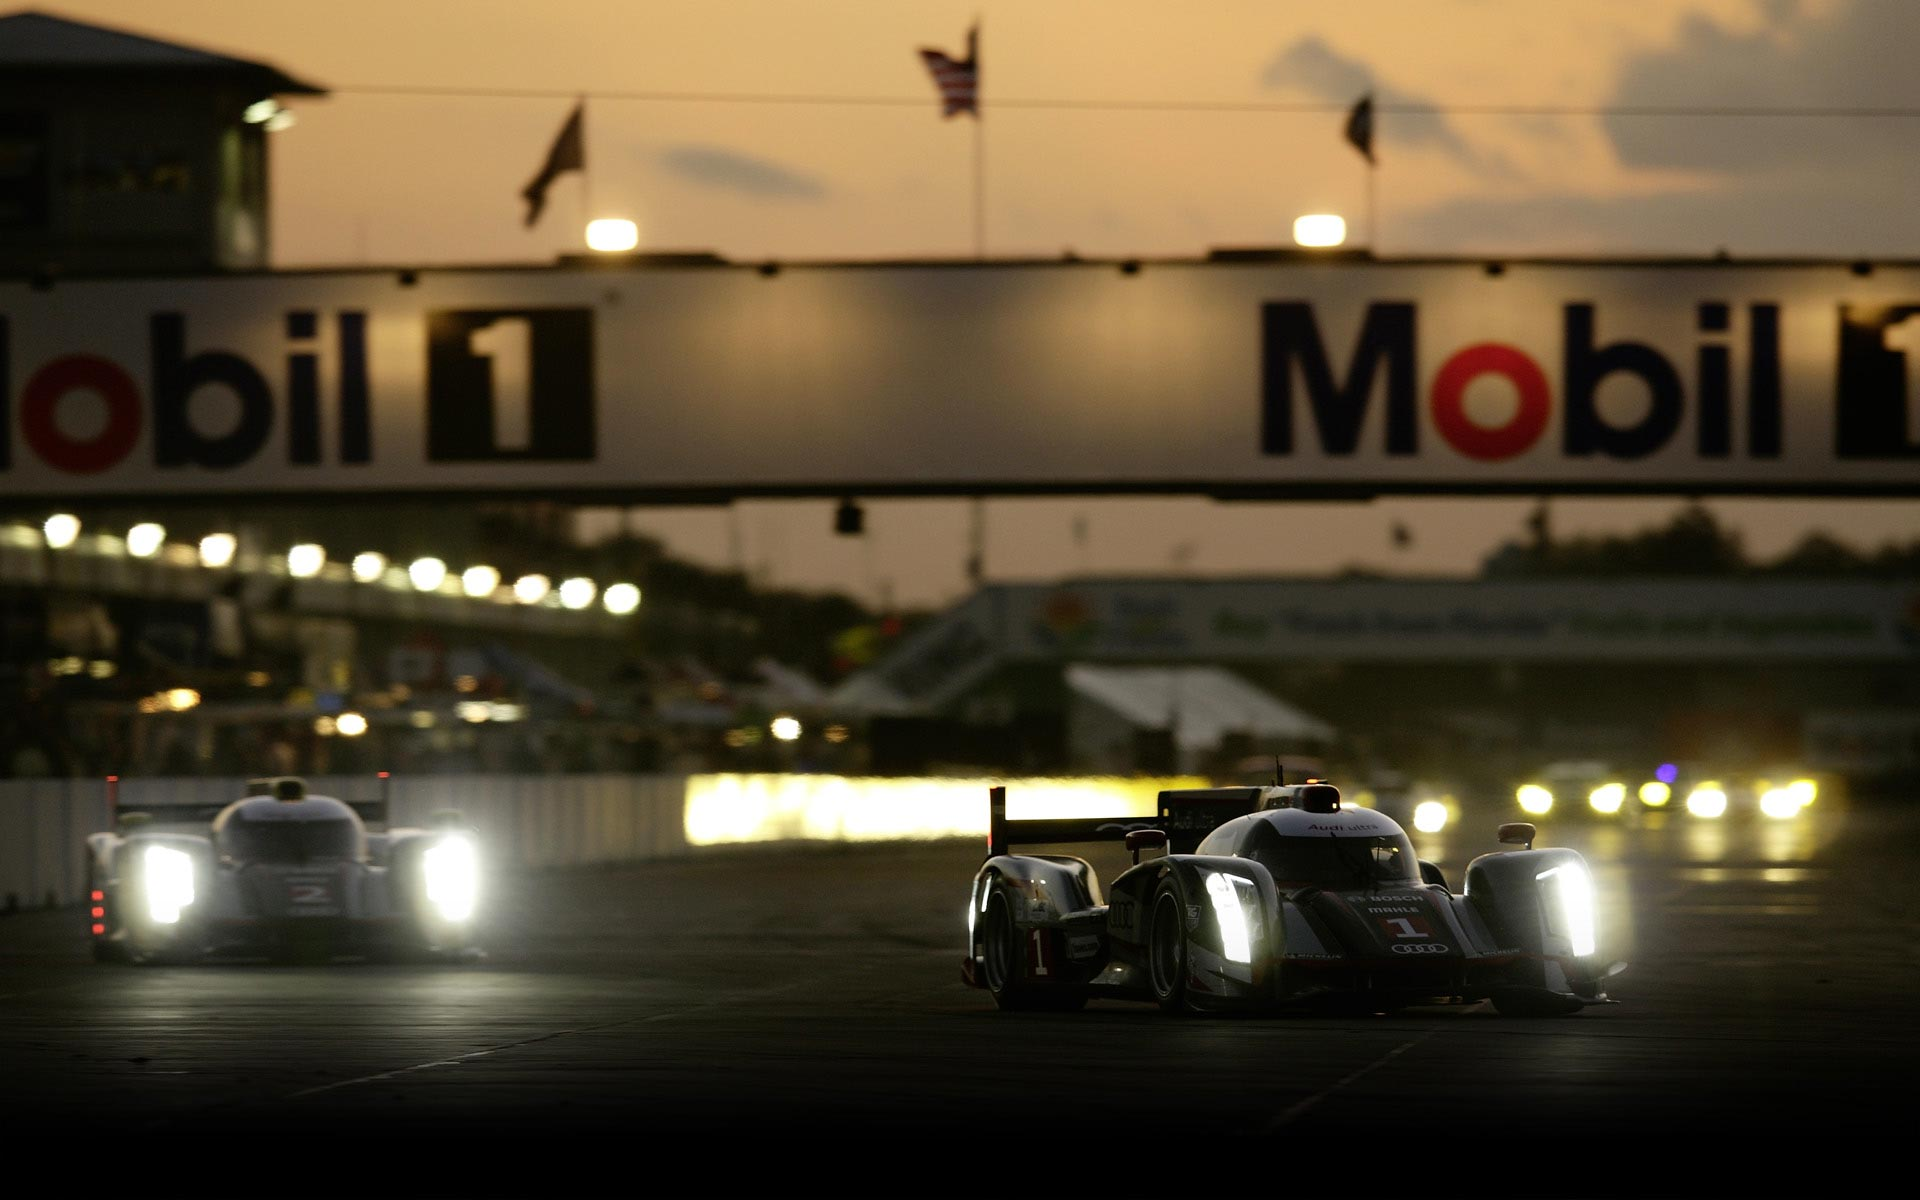 Audi Motorsport Race Cars At Le Mans Race During Night 1920x1200 1920x1200